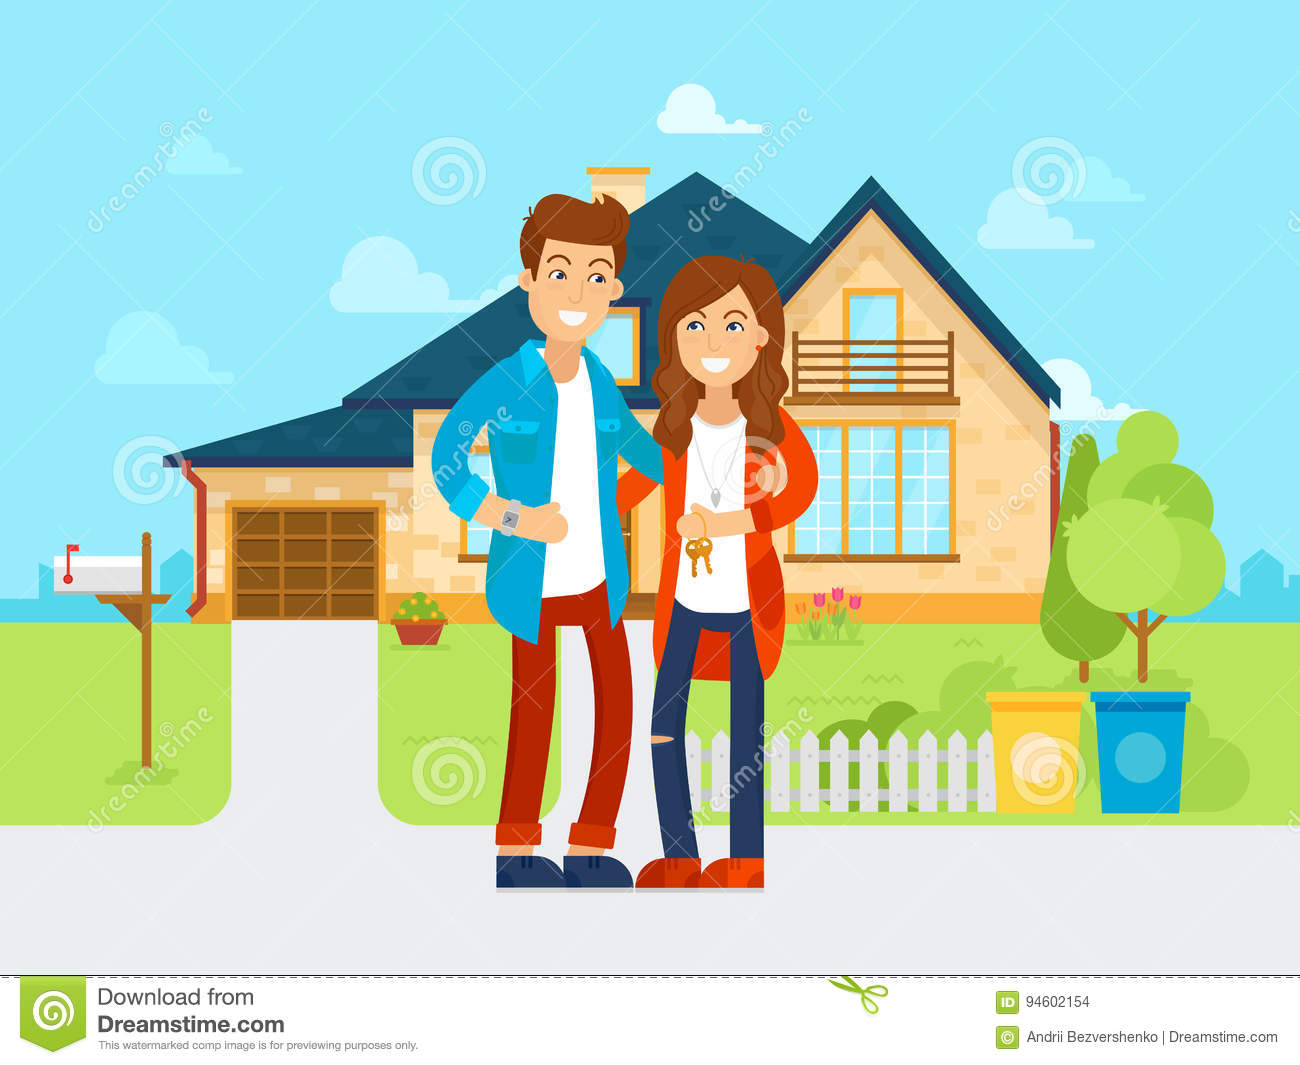 Cartoon Characters Houses : Cartoon family house vector illustration cartoondealer